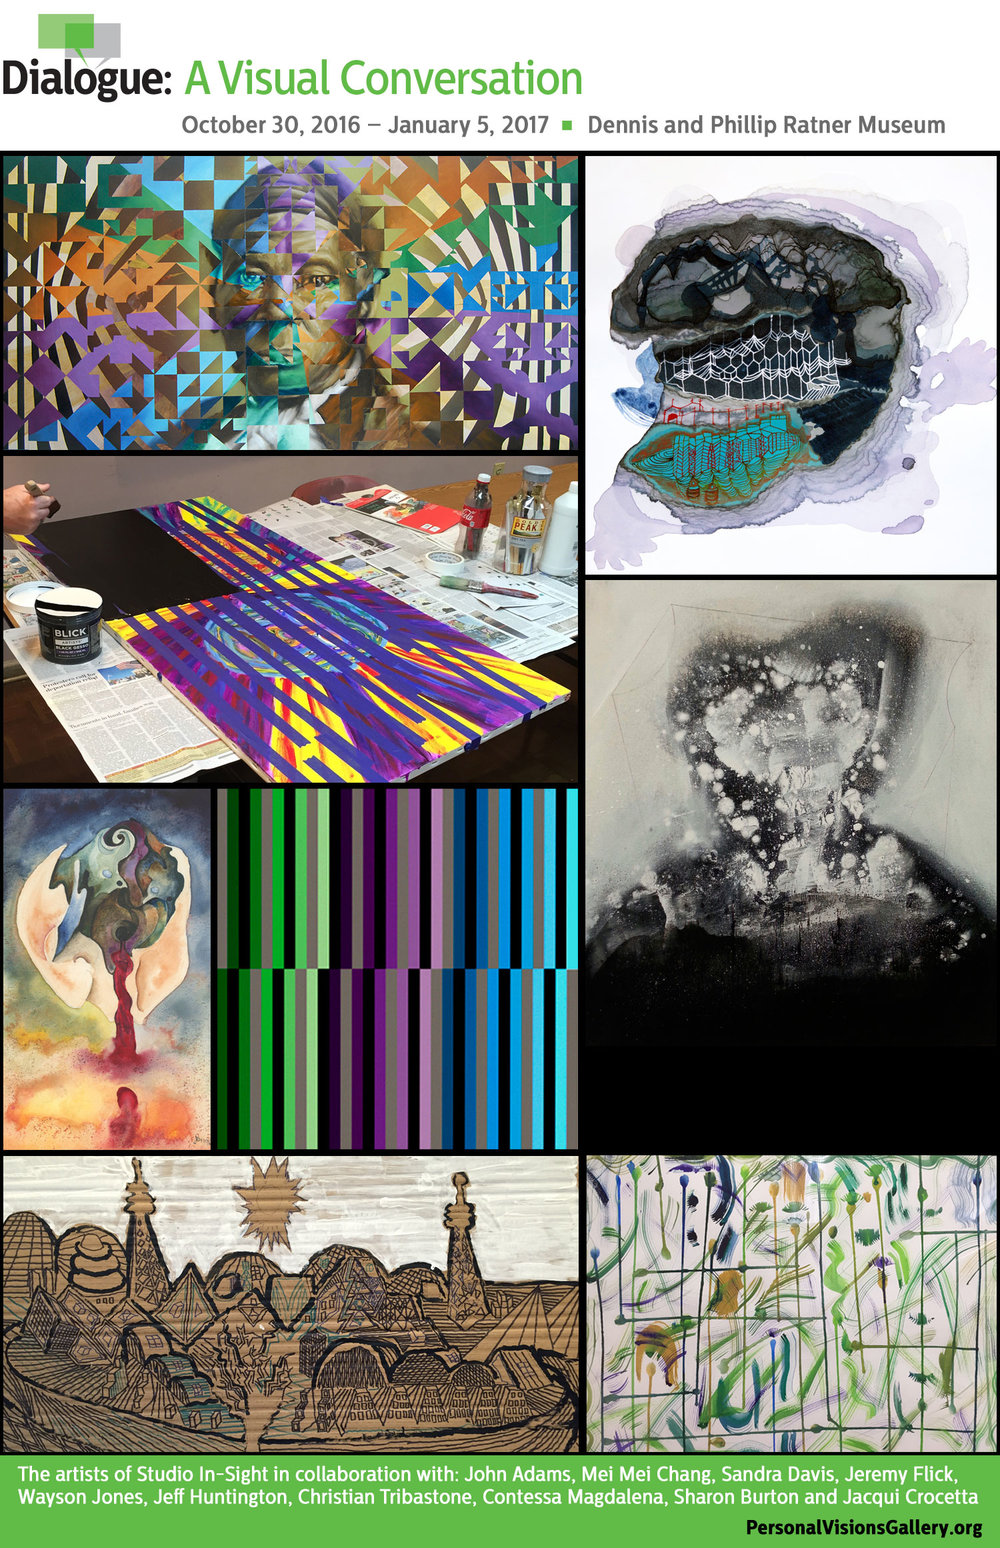 Clockwise, from top left: works by Jeff Huntington, Mei Mei Chang, Wayson Jones, Jay Armstrong, Paul Spratlin, Dan Ellis, Jeremy Flick and Mack James.